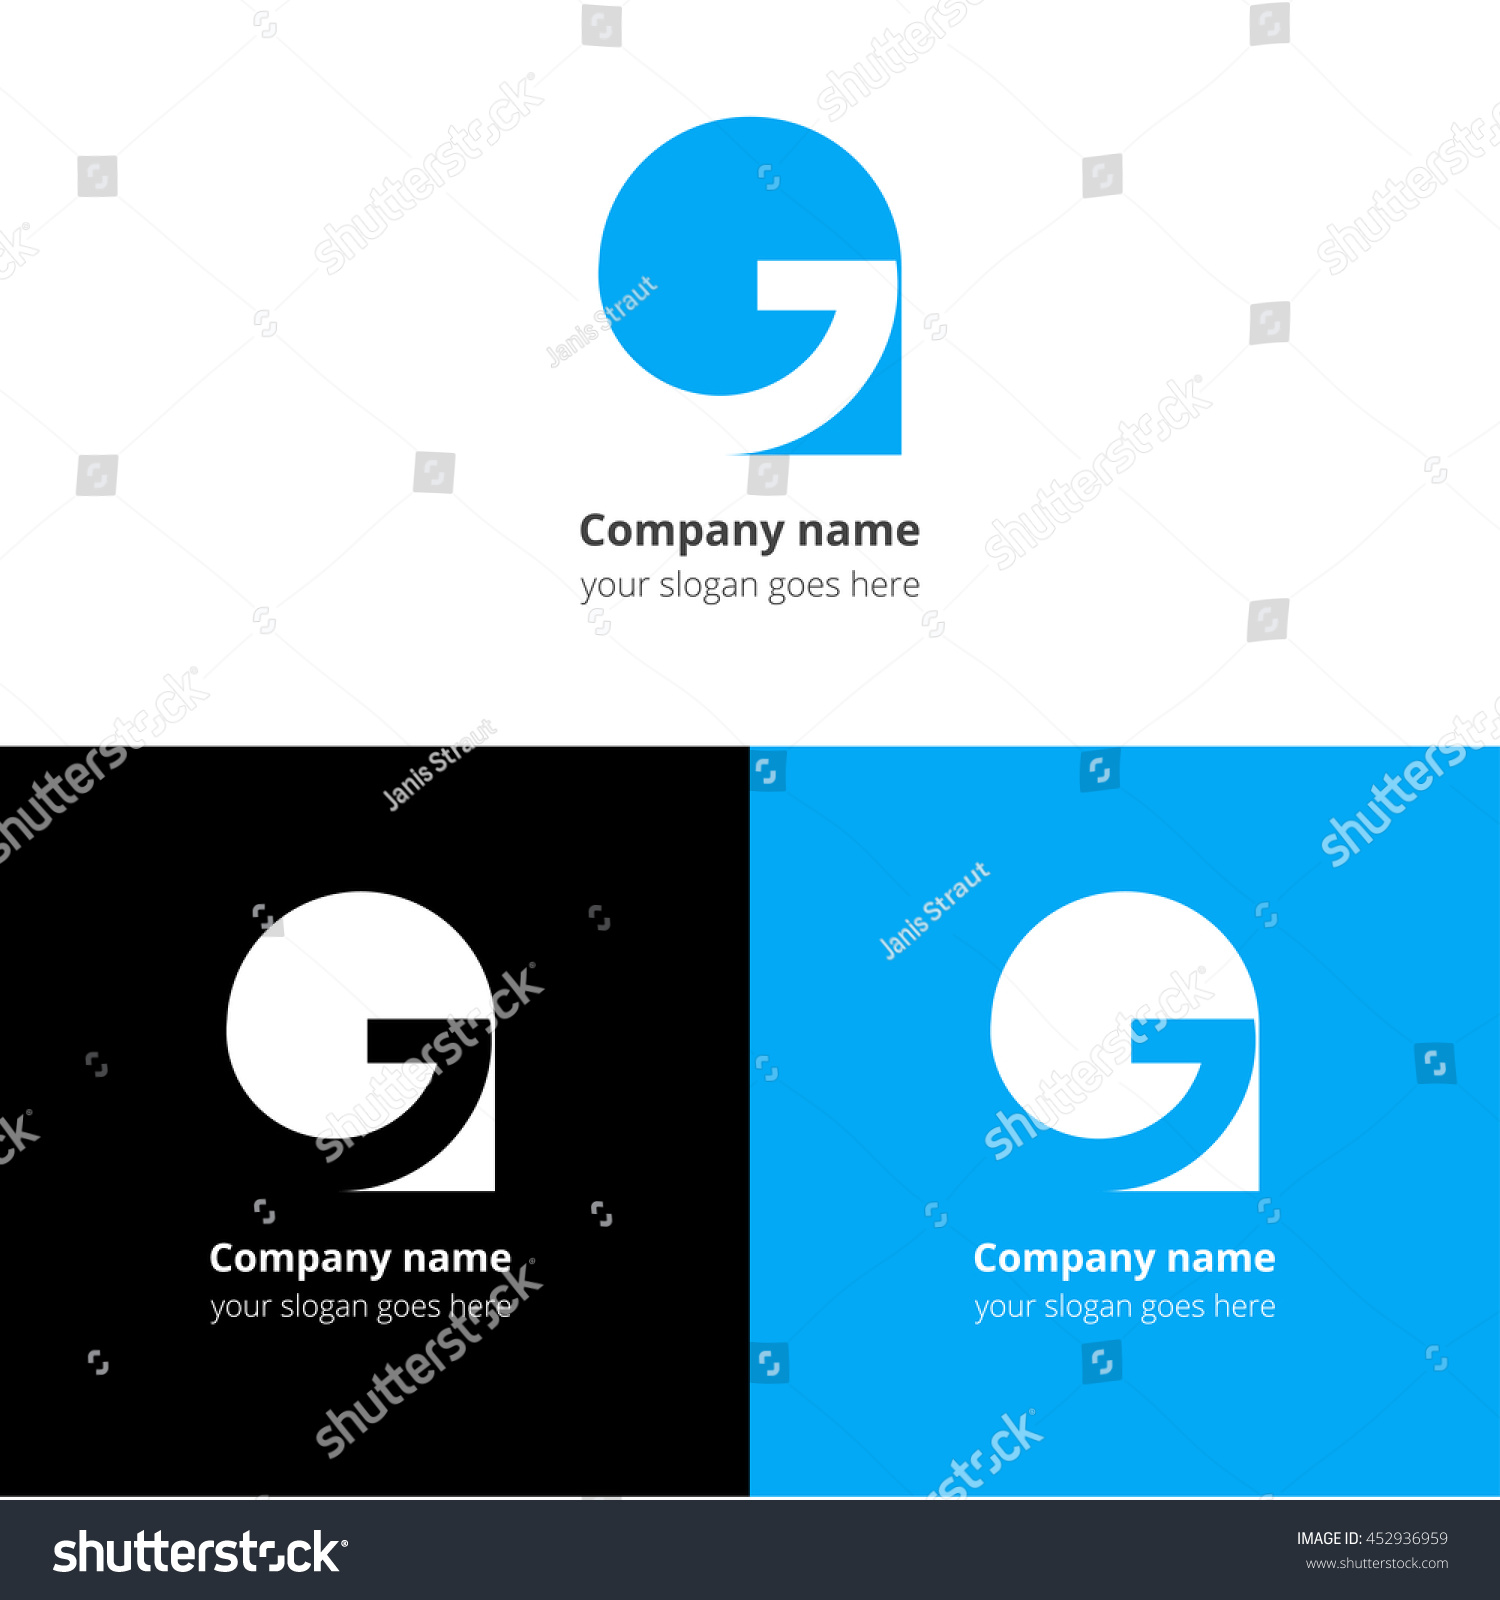 letter g logo icon flat vector stock vector (royalty free) 452936959